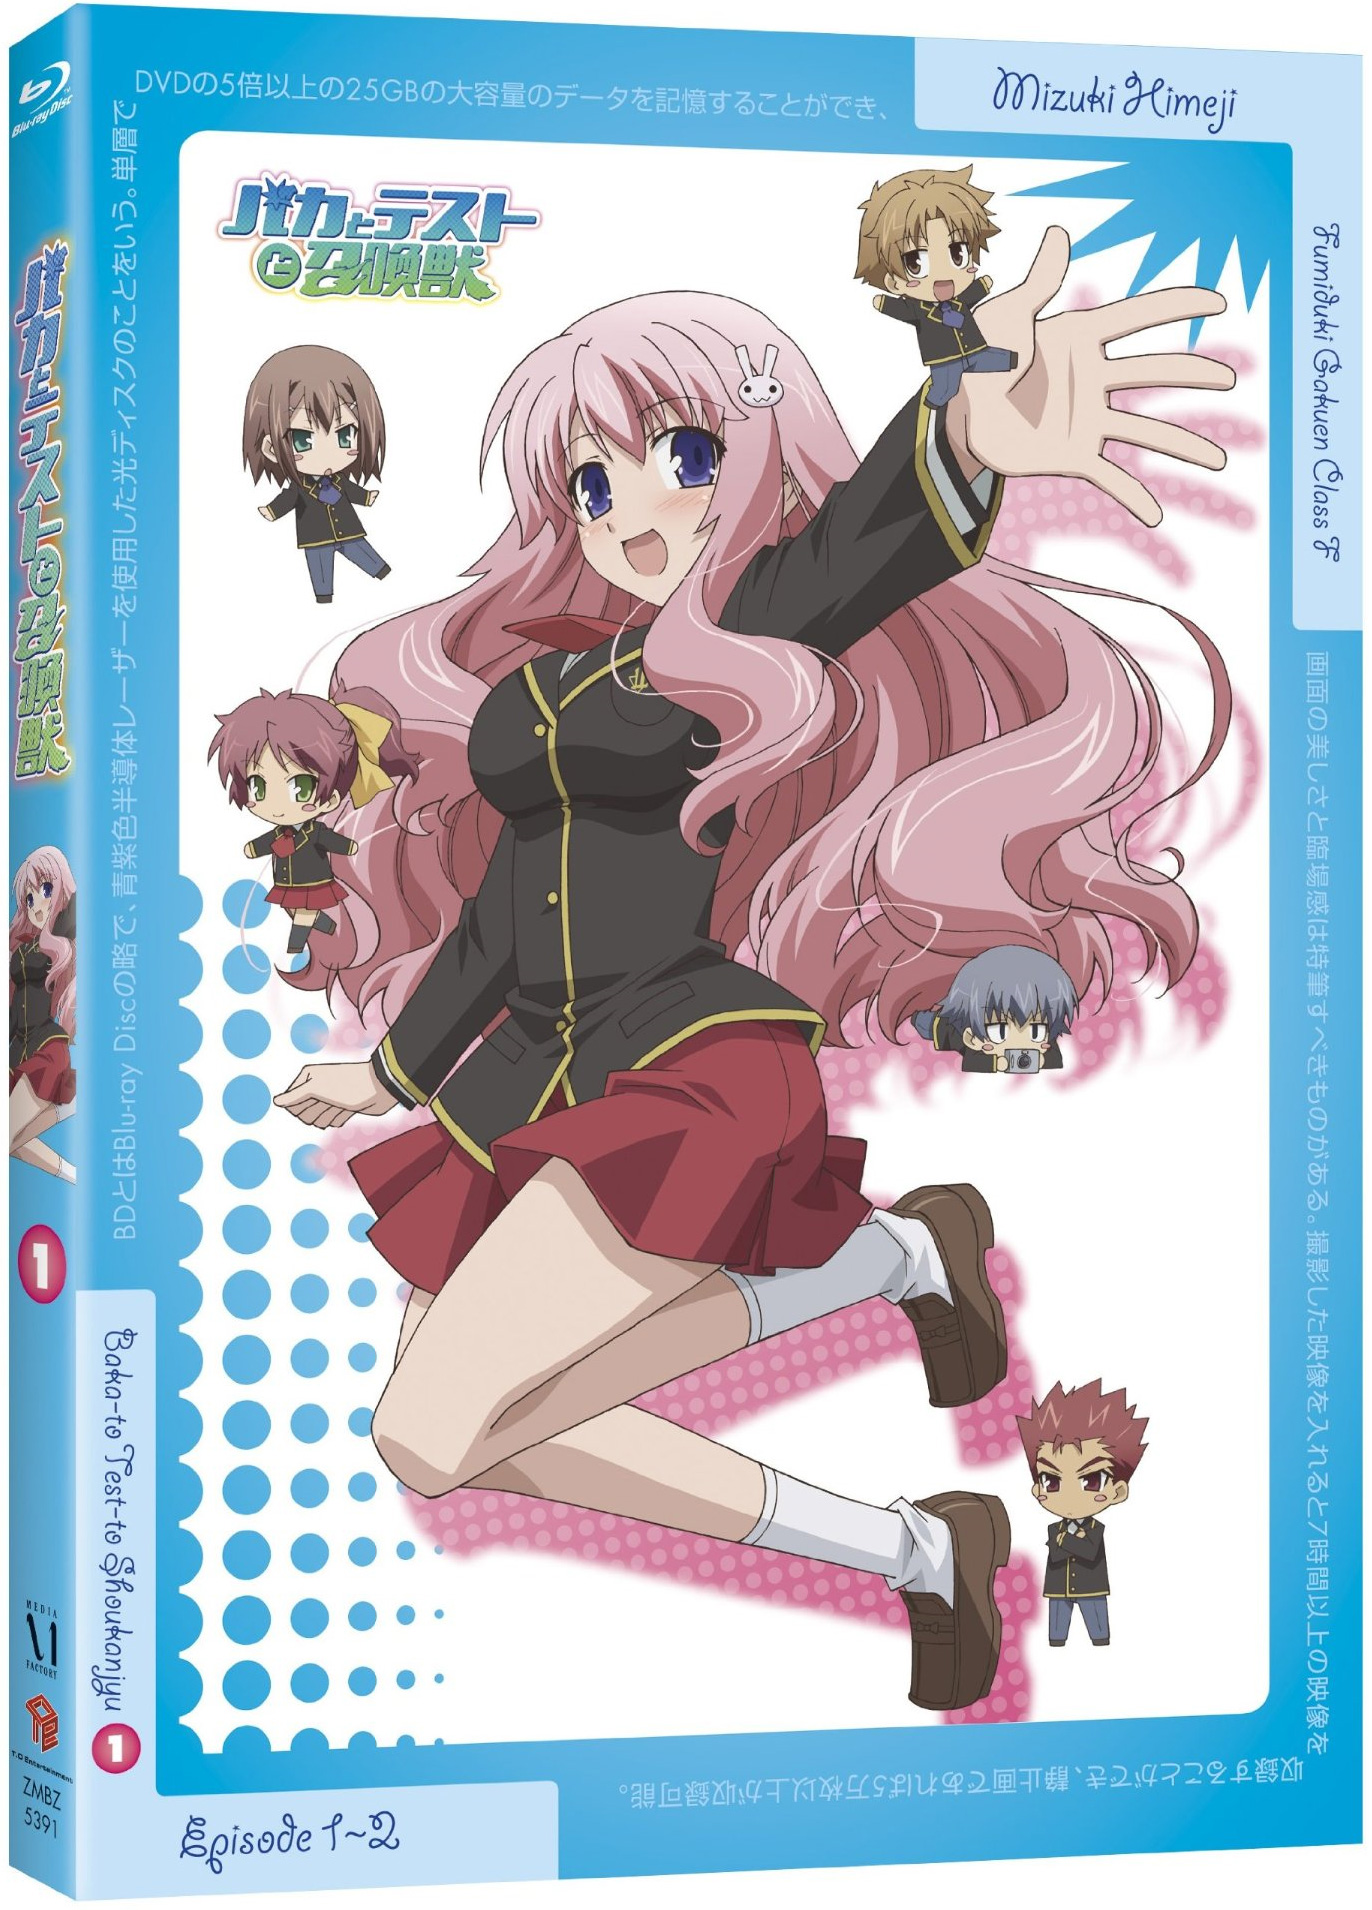 Baka to test to shokanju vol 5